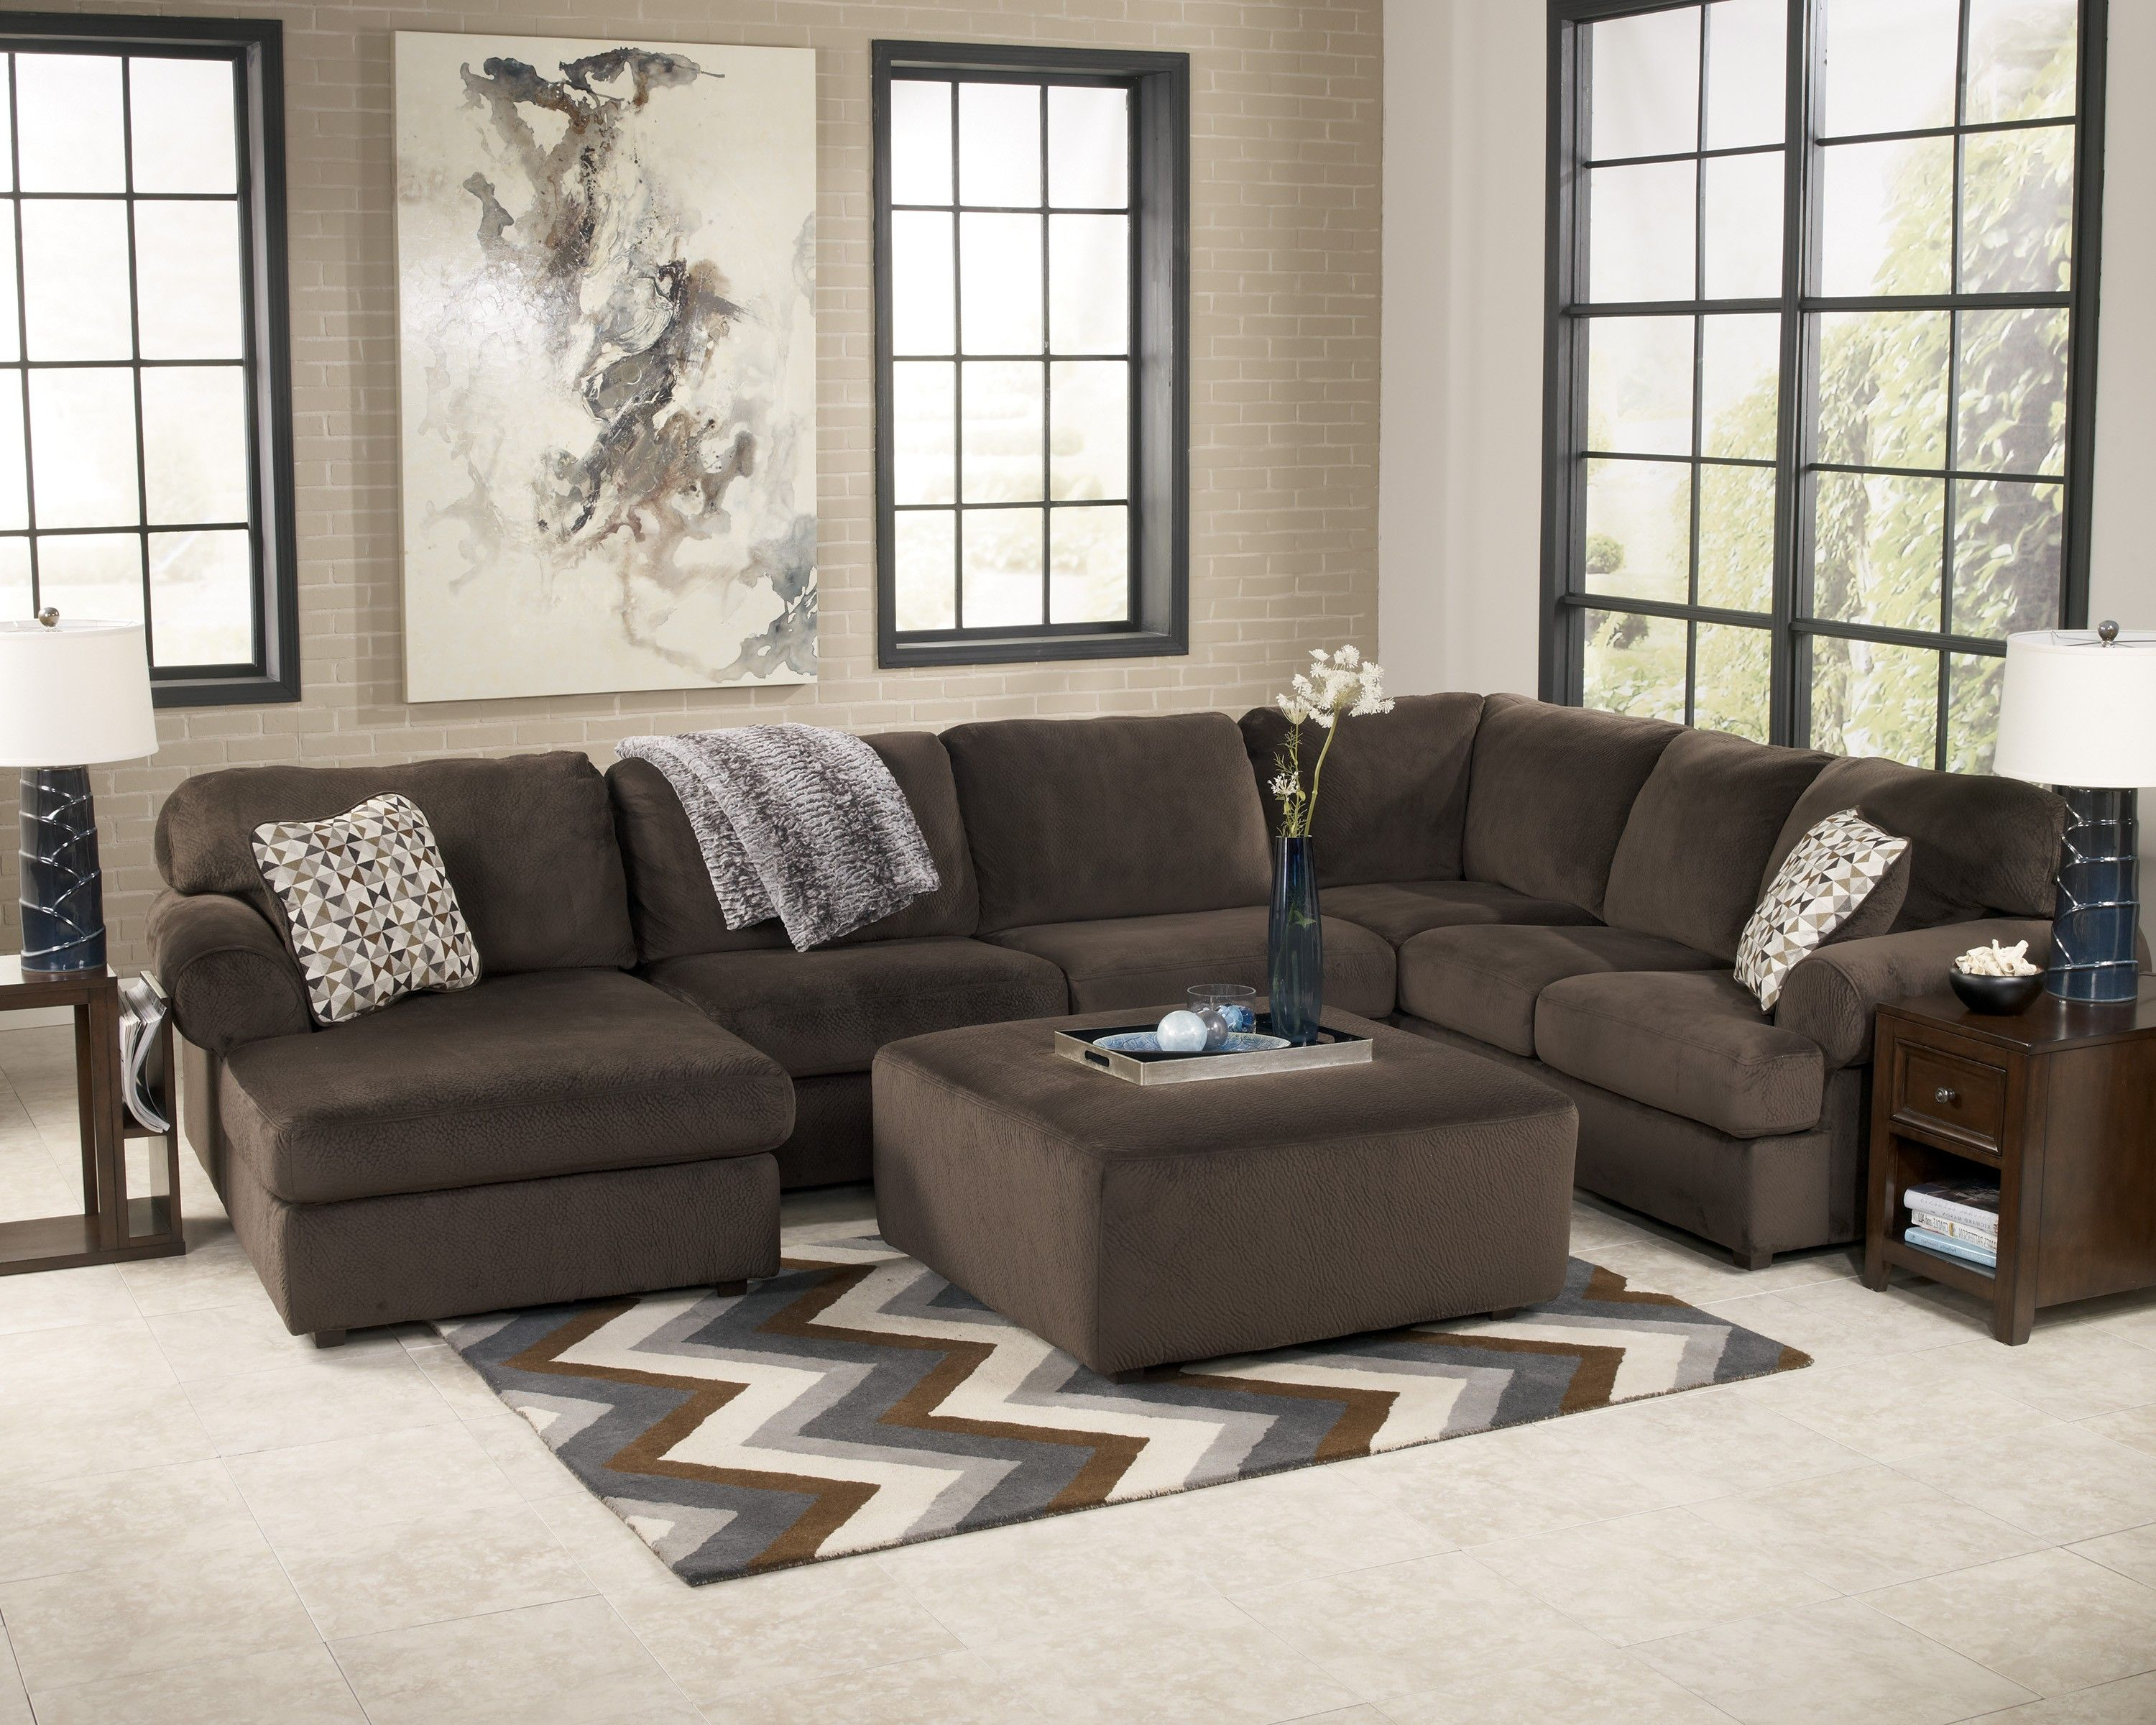 Jessa Place Chocolate Living Room Set